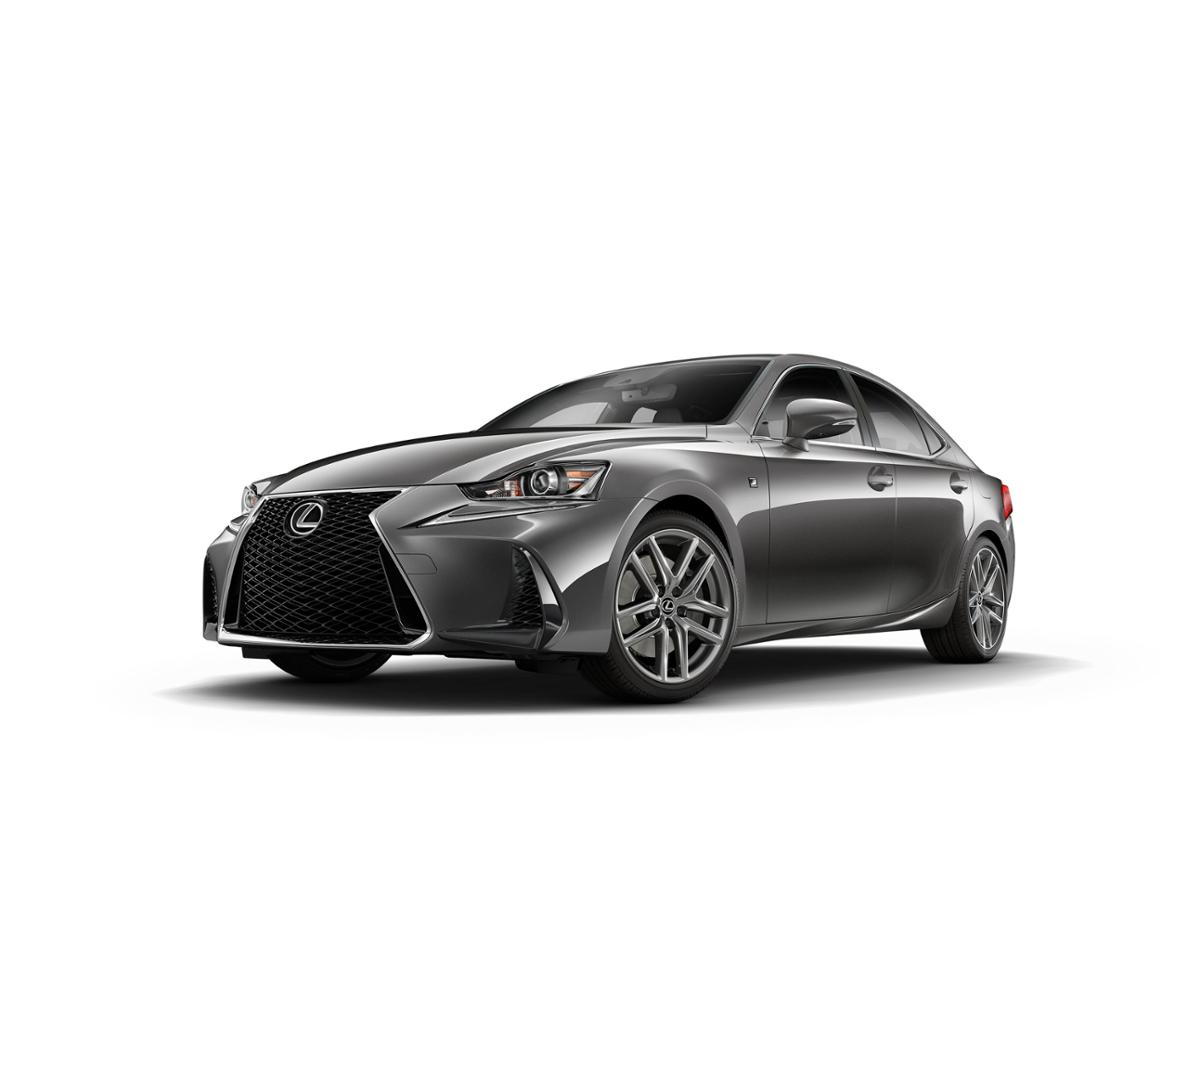 2019 Lexus IS 300 Vehicle Photo in Danvers, MA 01923